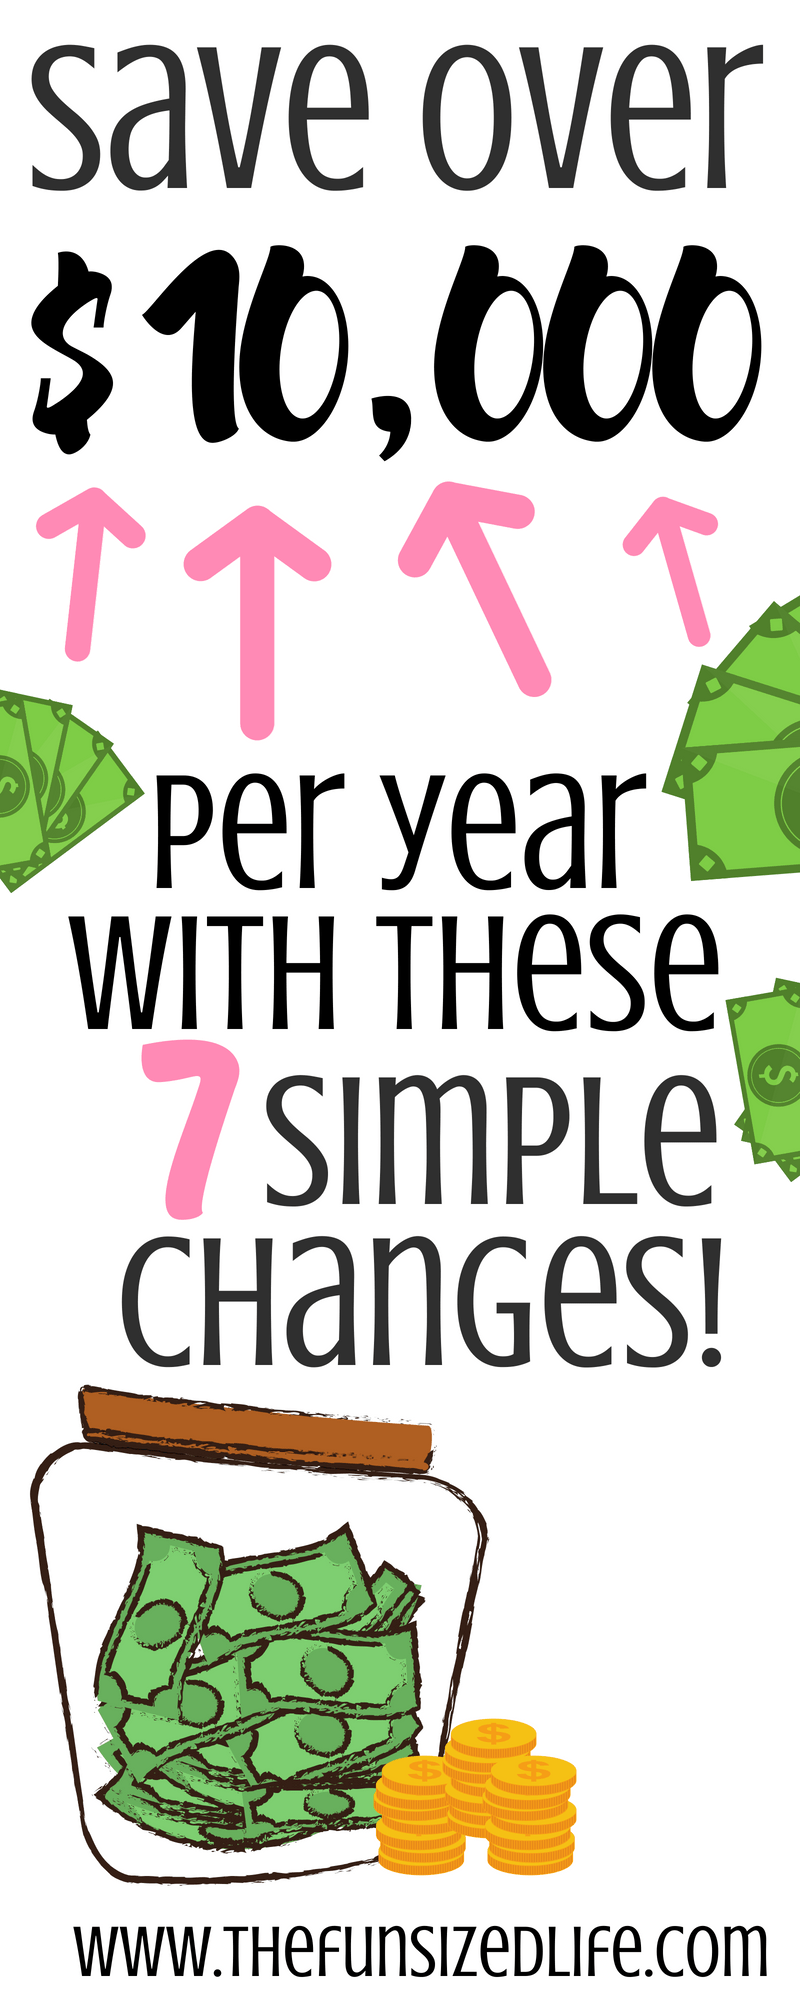 These steps are so easy! I seriously need more money in my life! #moremoney #budgeting #finances